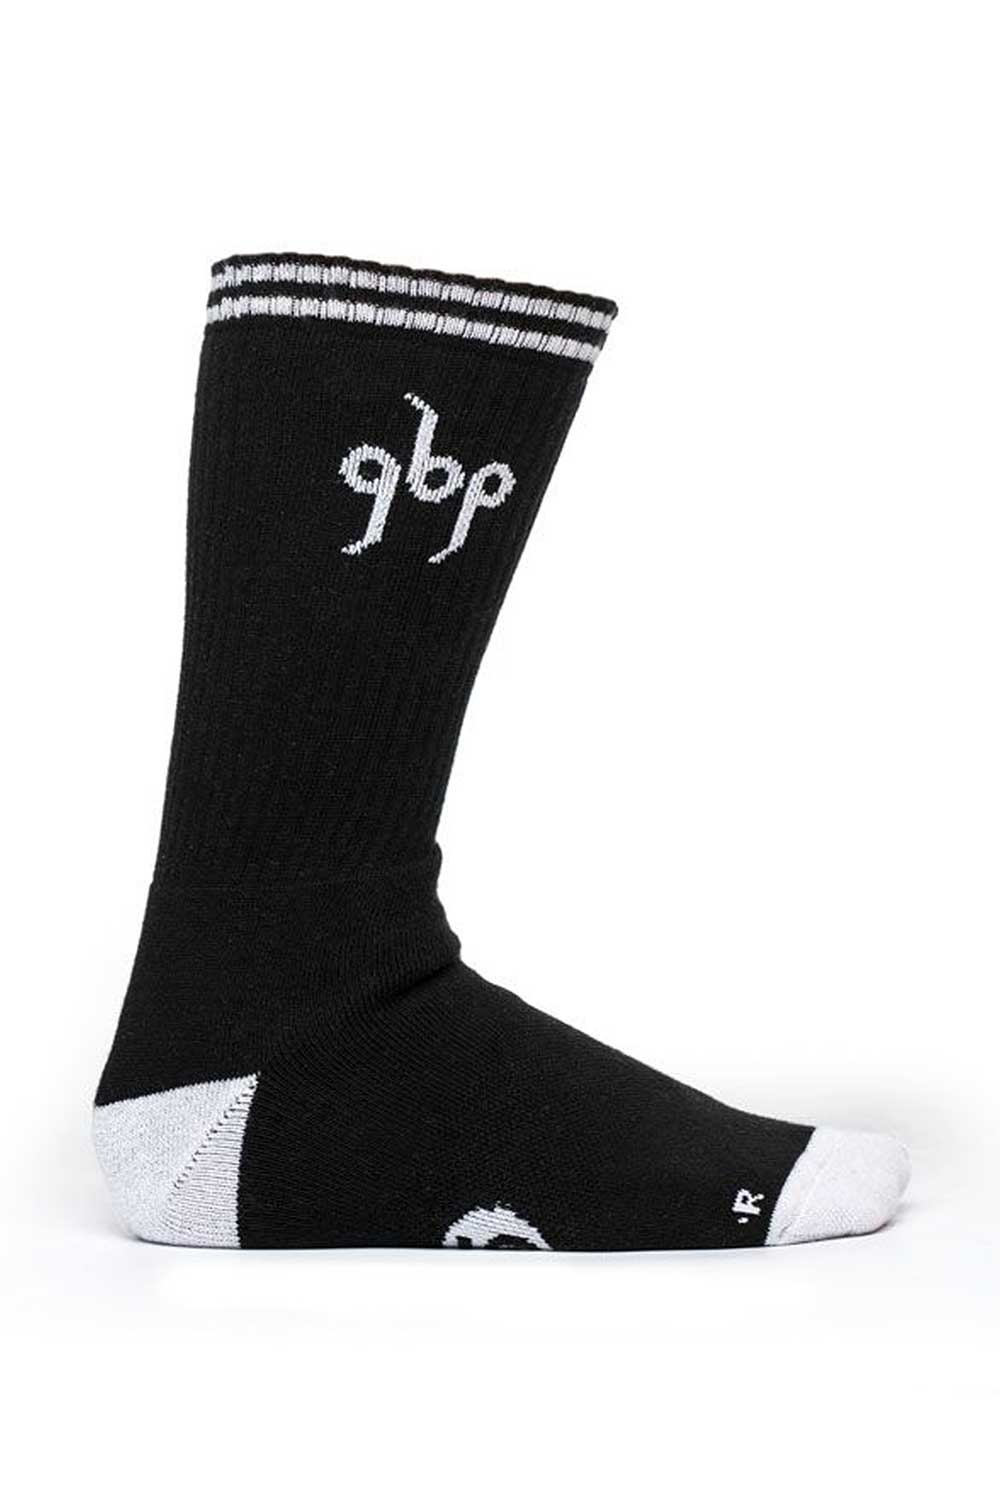 스팅키삭스 x 지비피 스노보드 양말JKY717BE/BLACK/WHITESTINKY SOCKS GBP SOCKS_FJKY717BE